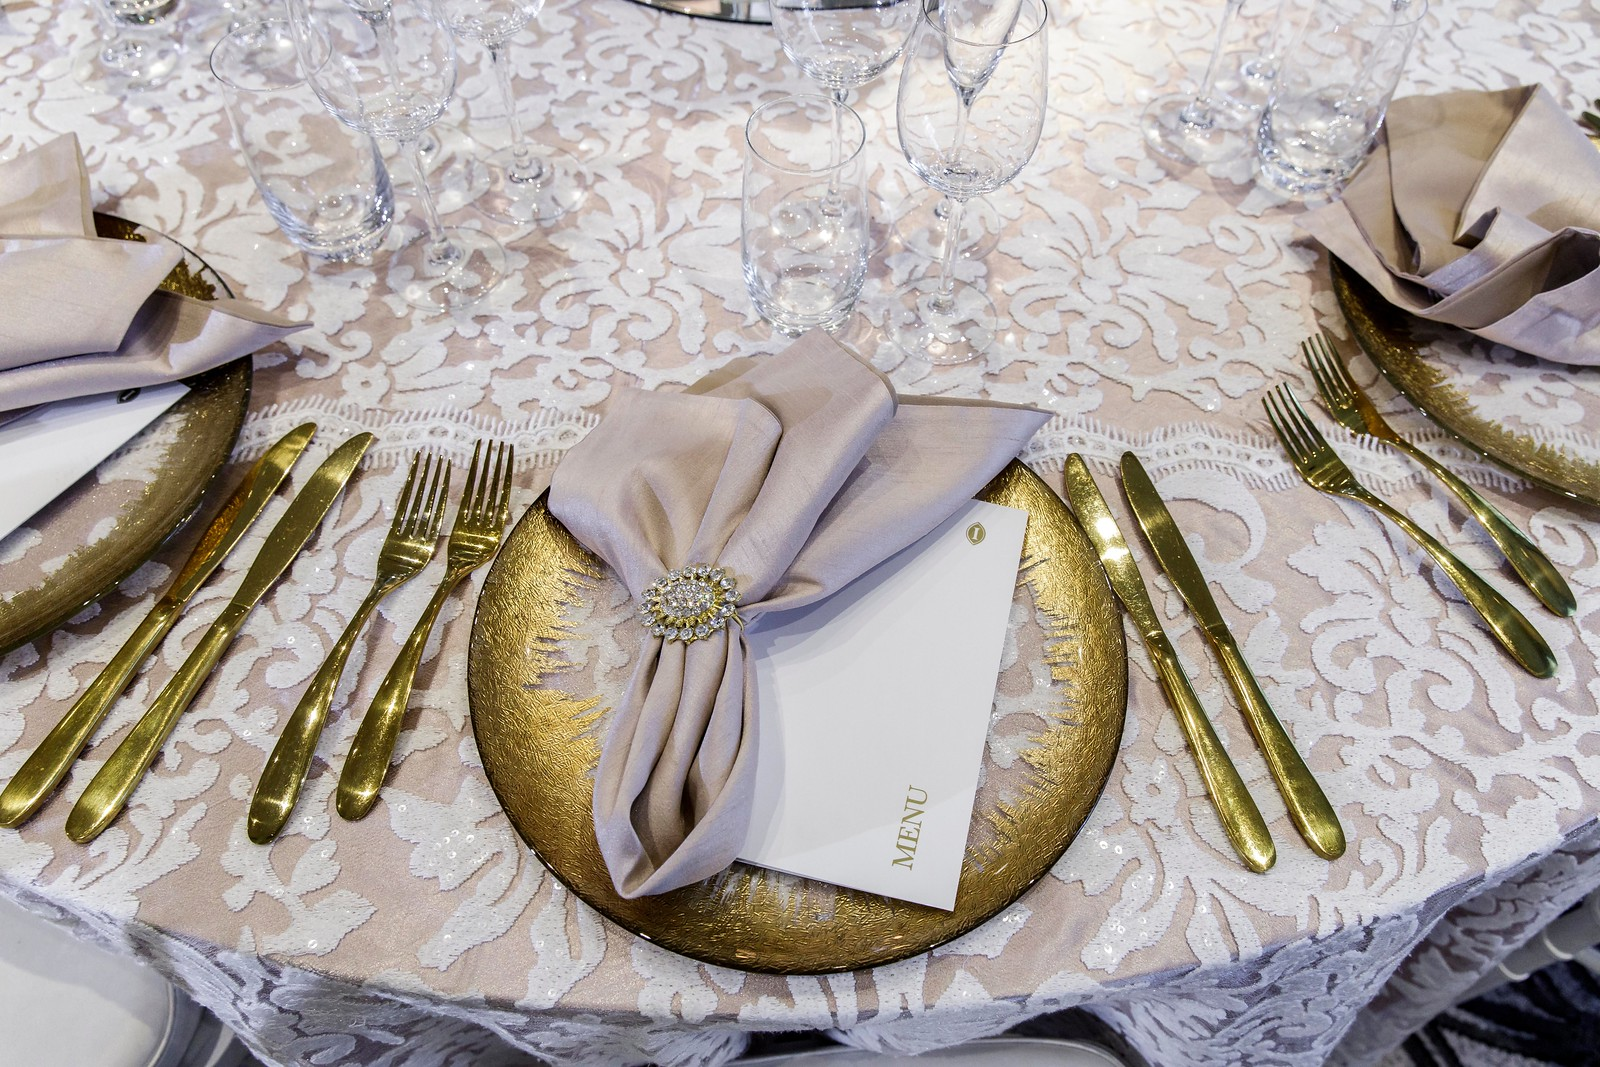 gold_foil_rim_charger_plate_wedding_inlighten_photography_intercontinental_hotel.jpg